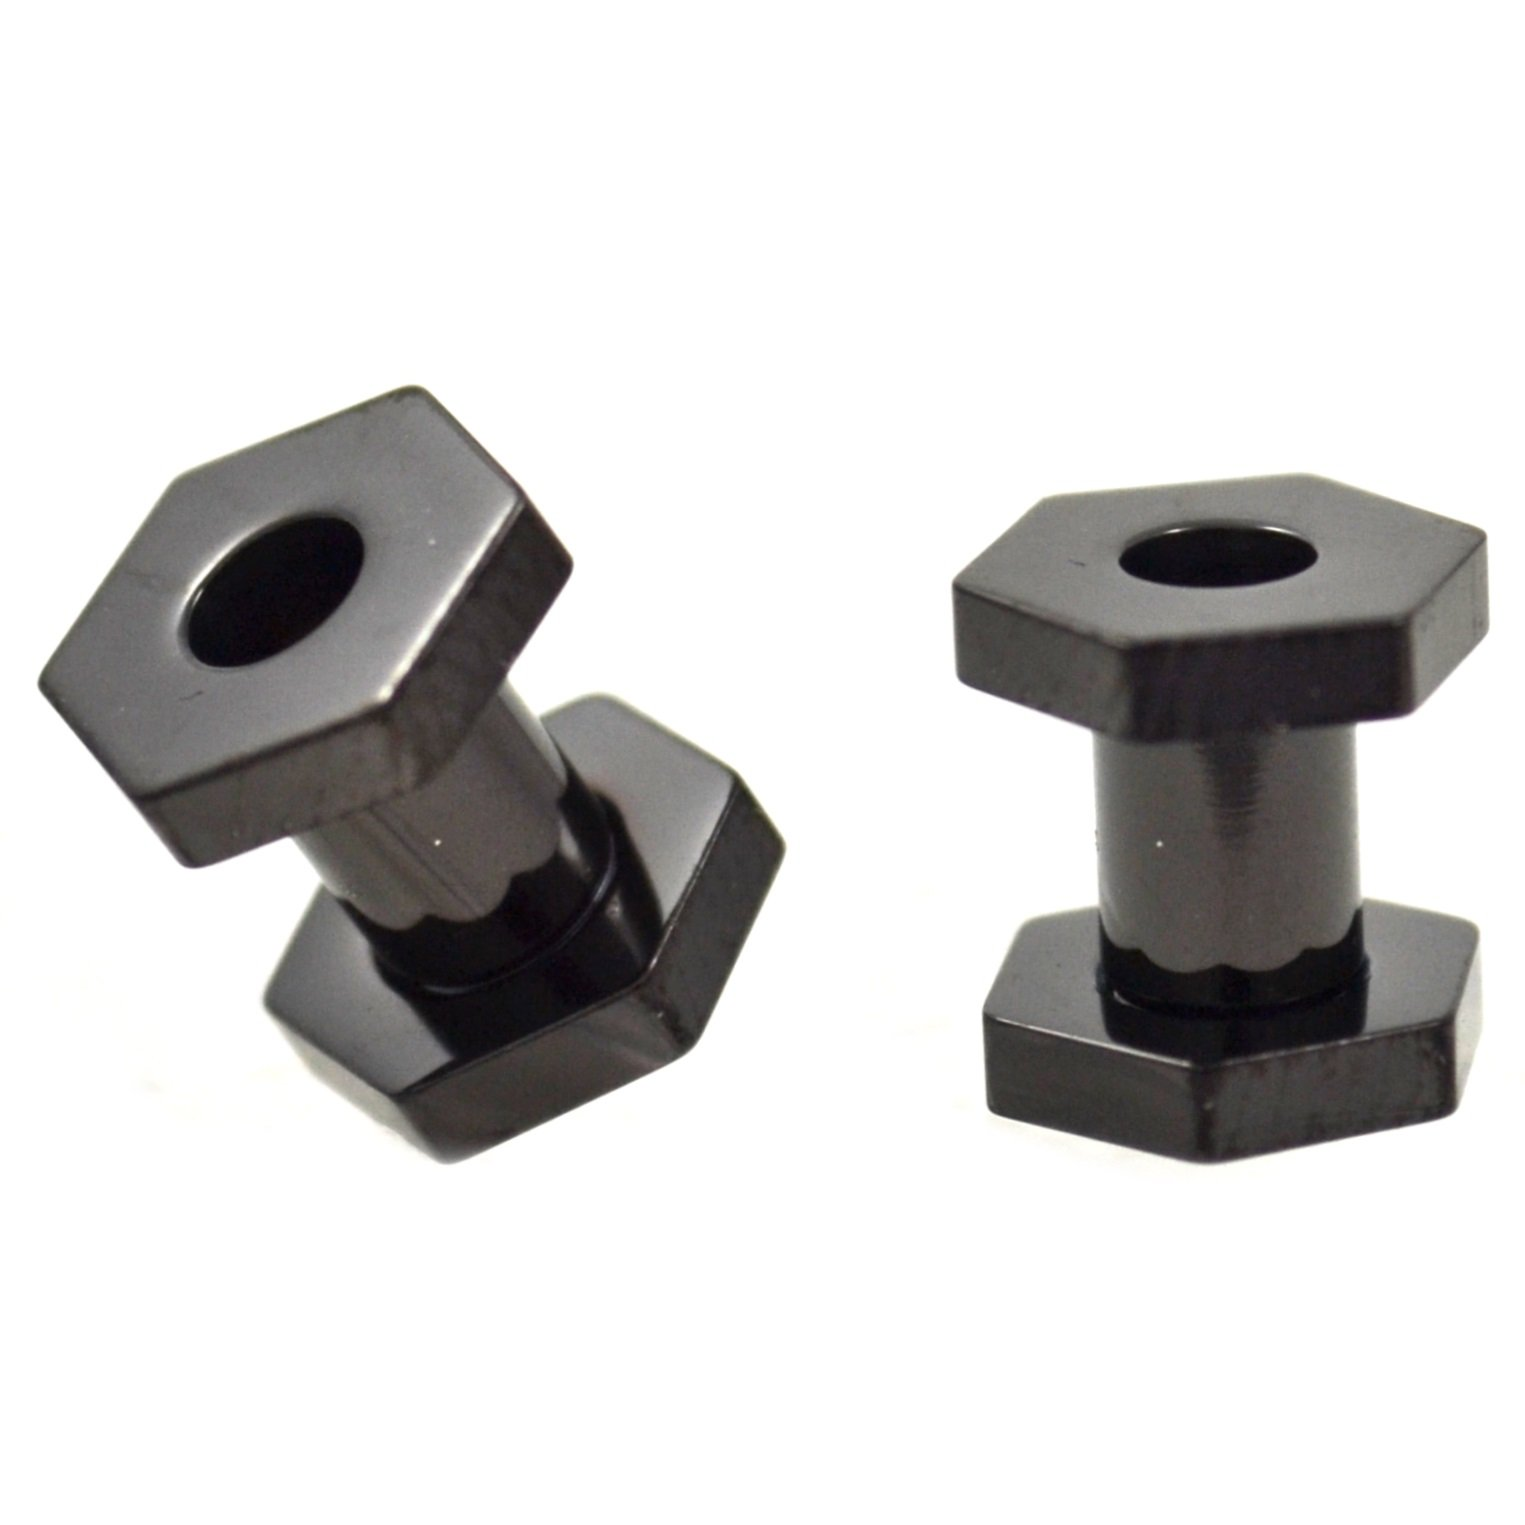 Pair of All Black Titanium Plated Hexagon Shaped End Ear Plugs Tunnels Screw Fit Gauges - 6G (4mm)